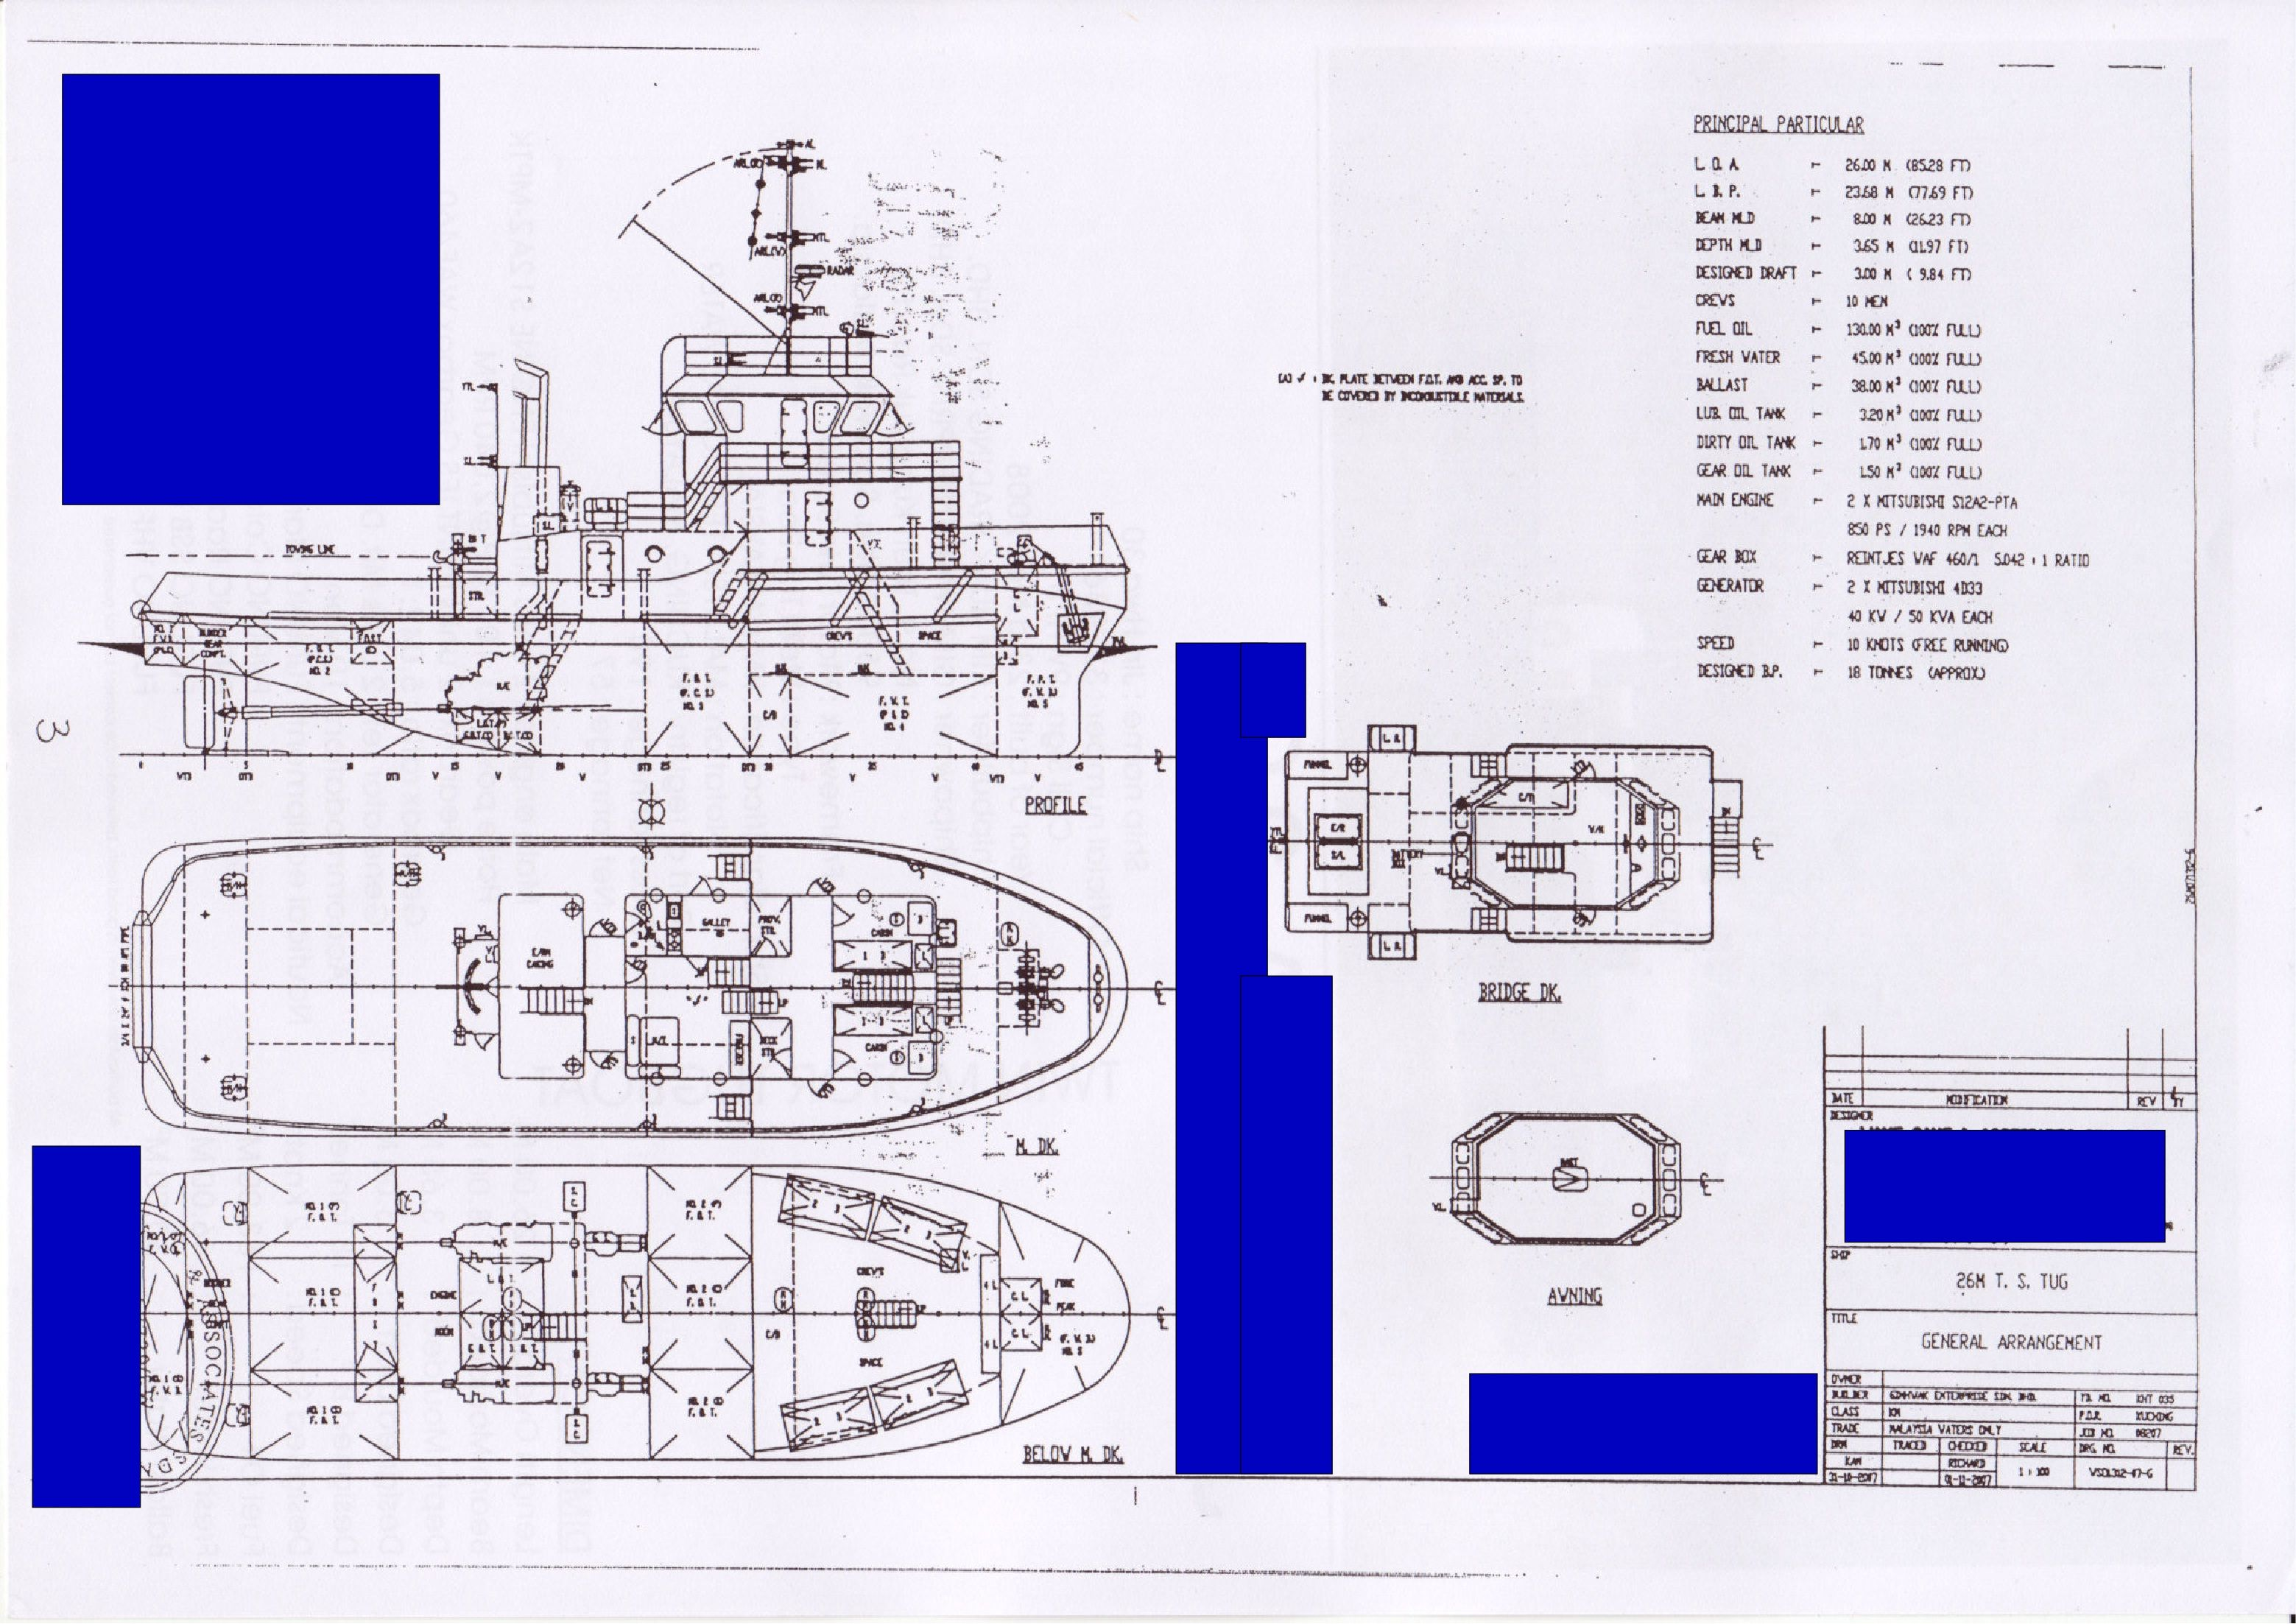 medium resolution of from direct shipyard seller for sale below 26m tugboat 2200hp mitsubishi engine